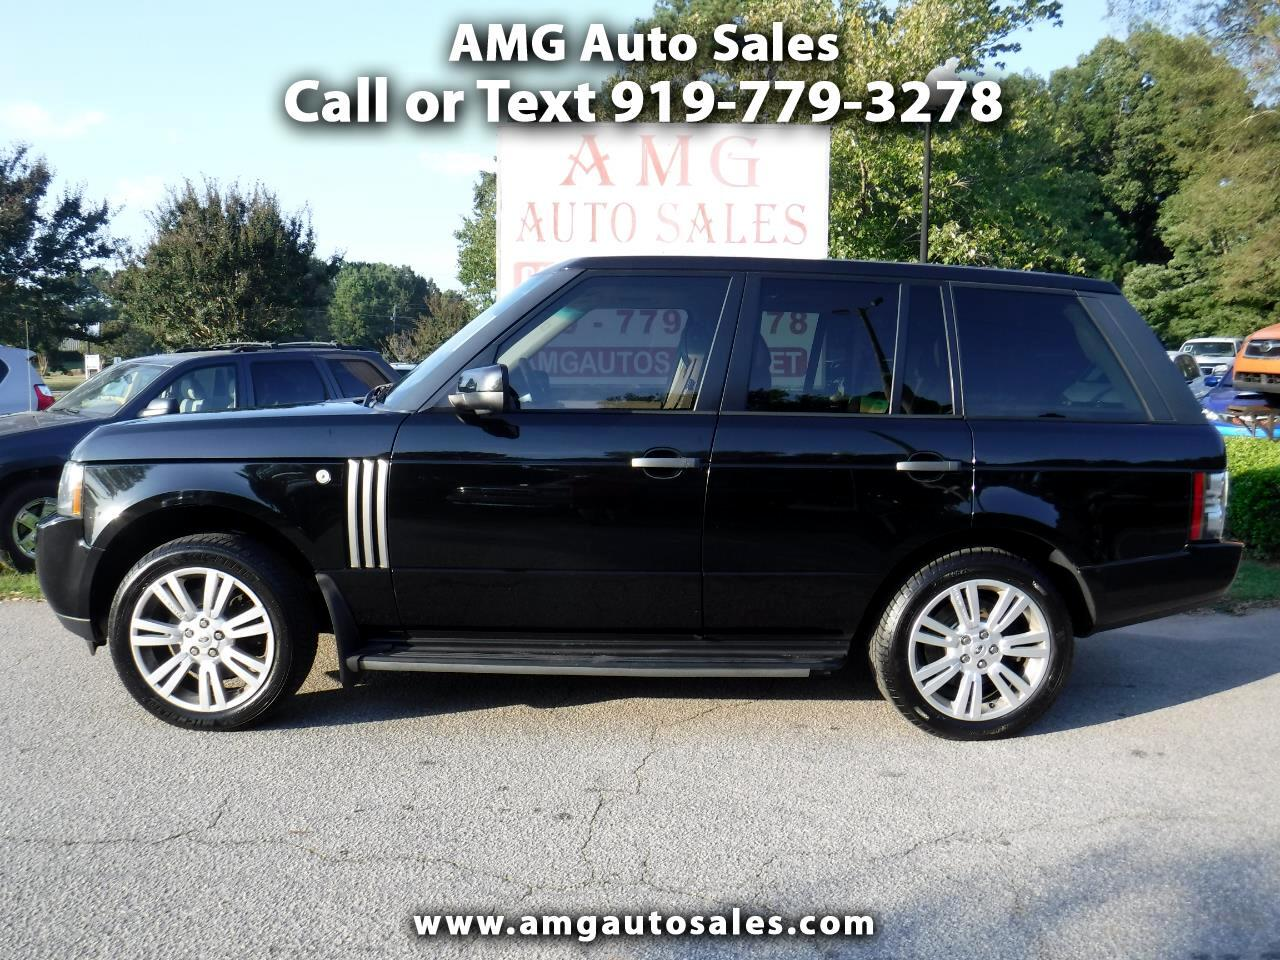 Used 2010 Land Rover Range Rover Hse For Sale In Raleigh Nc 27603